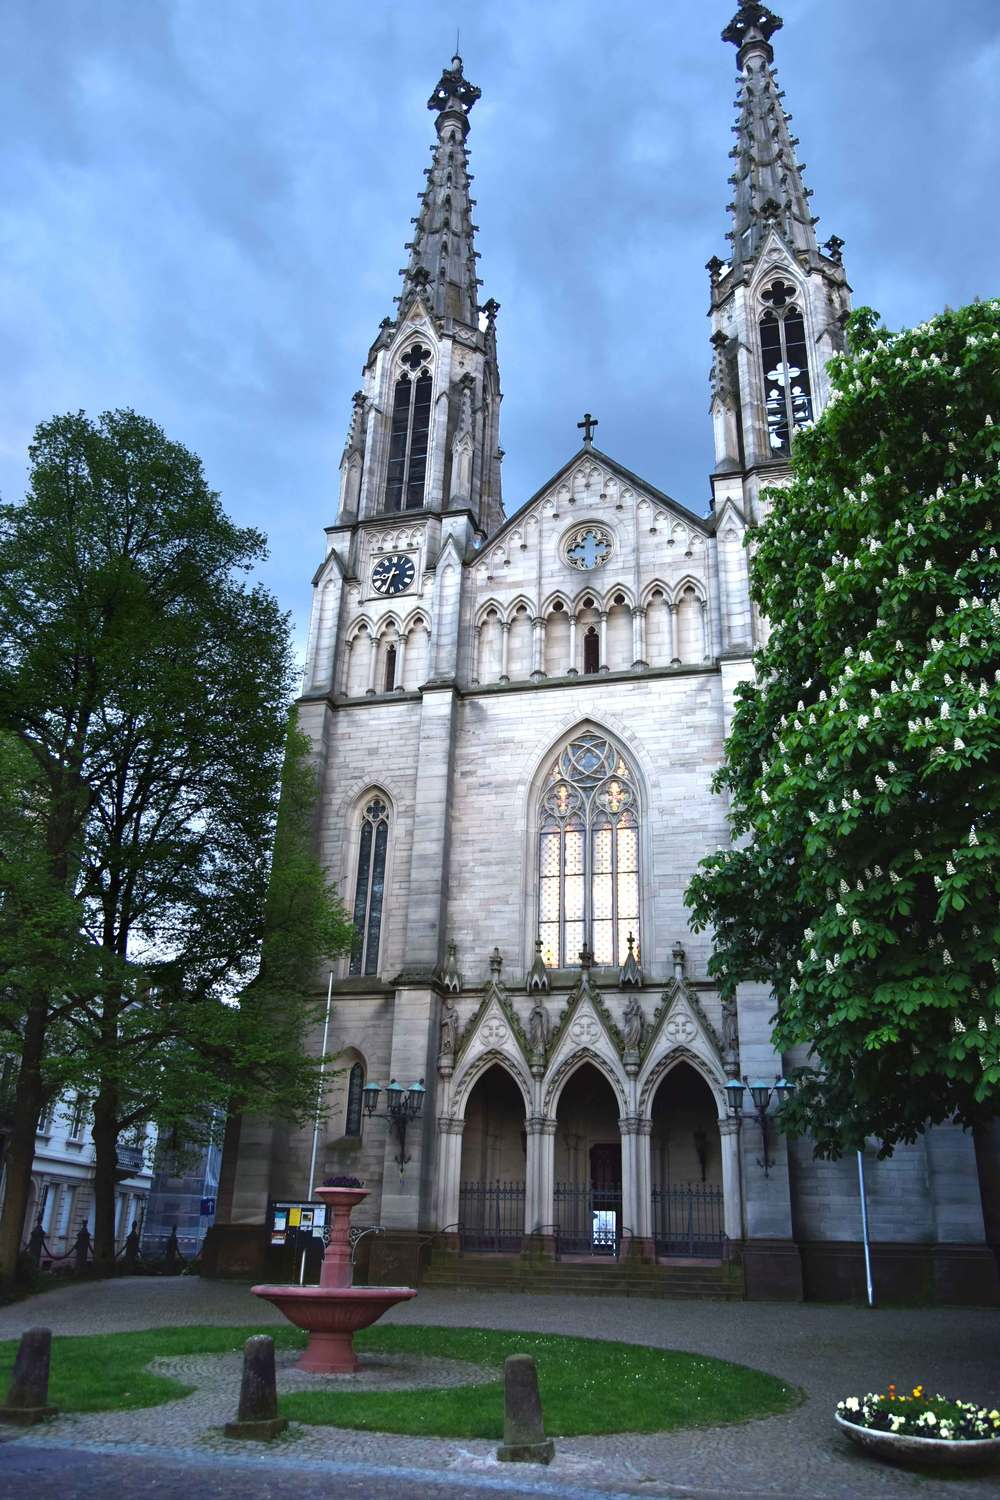 The cathedral, Baden Baden, Germany. Image©sourcingstyle.com